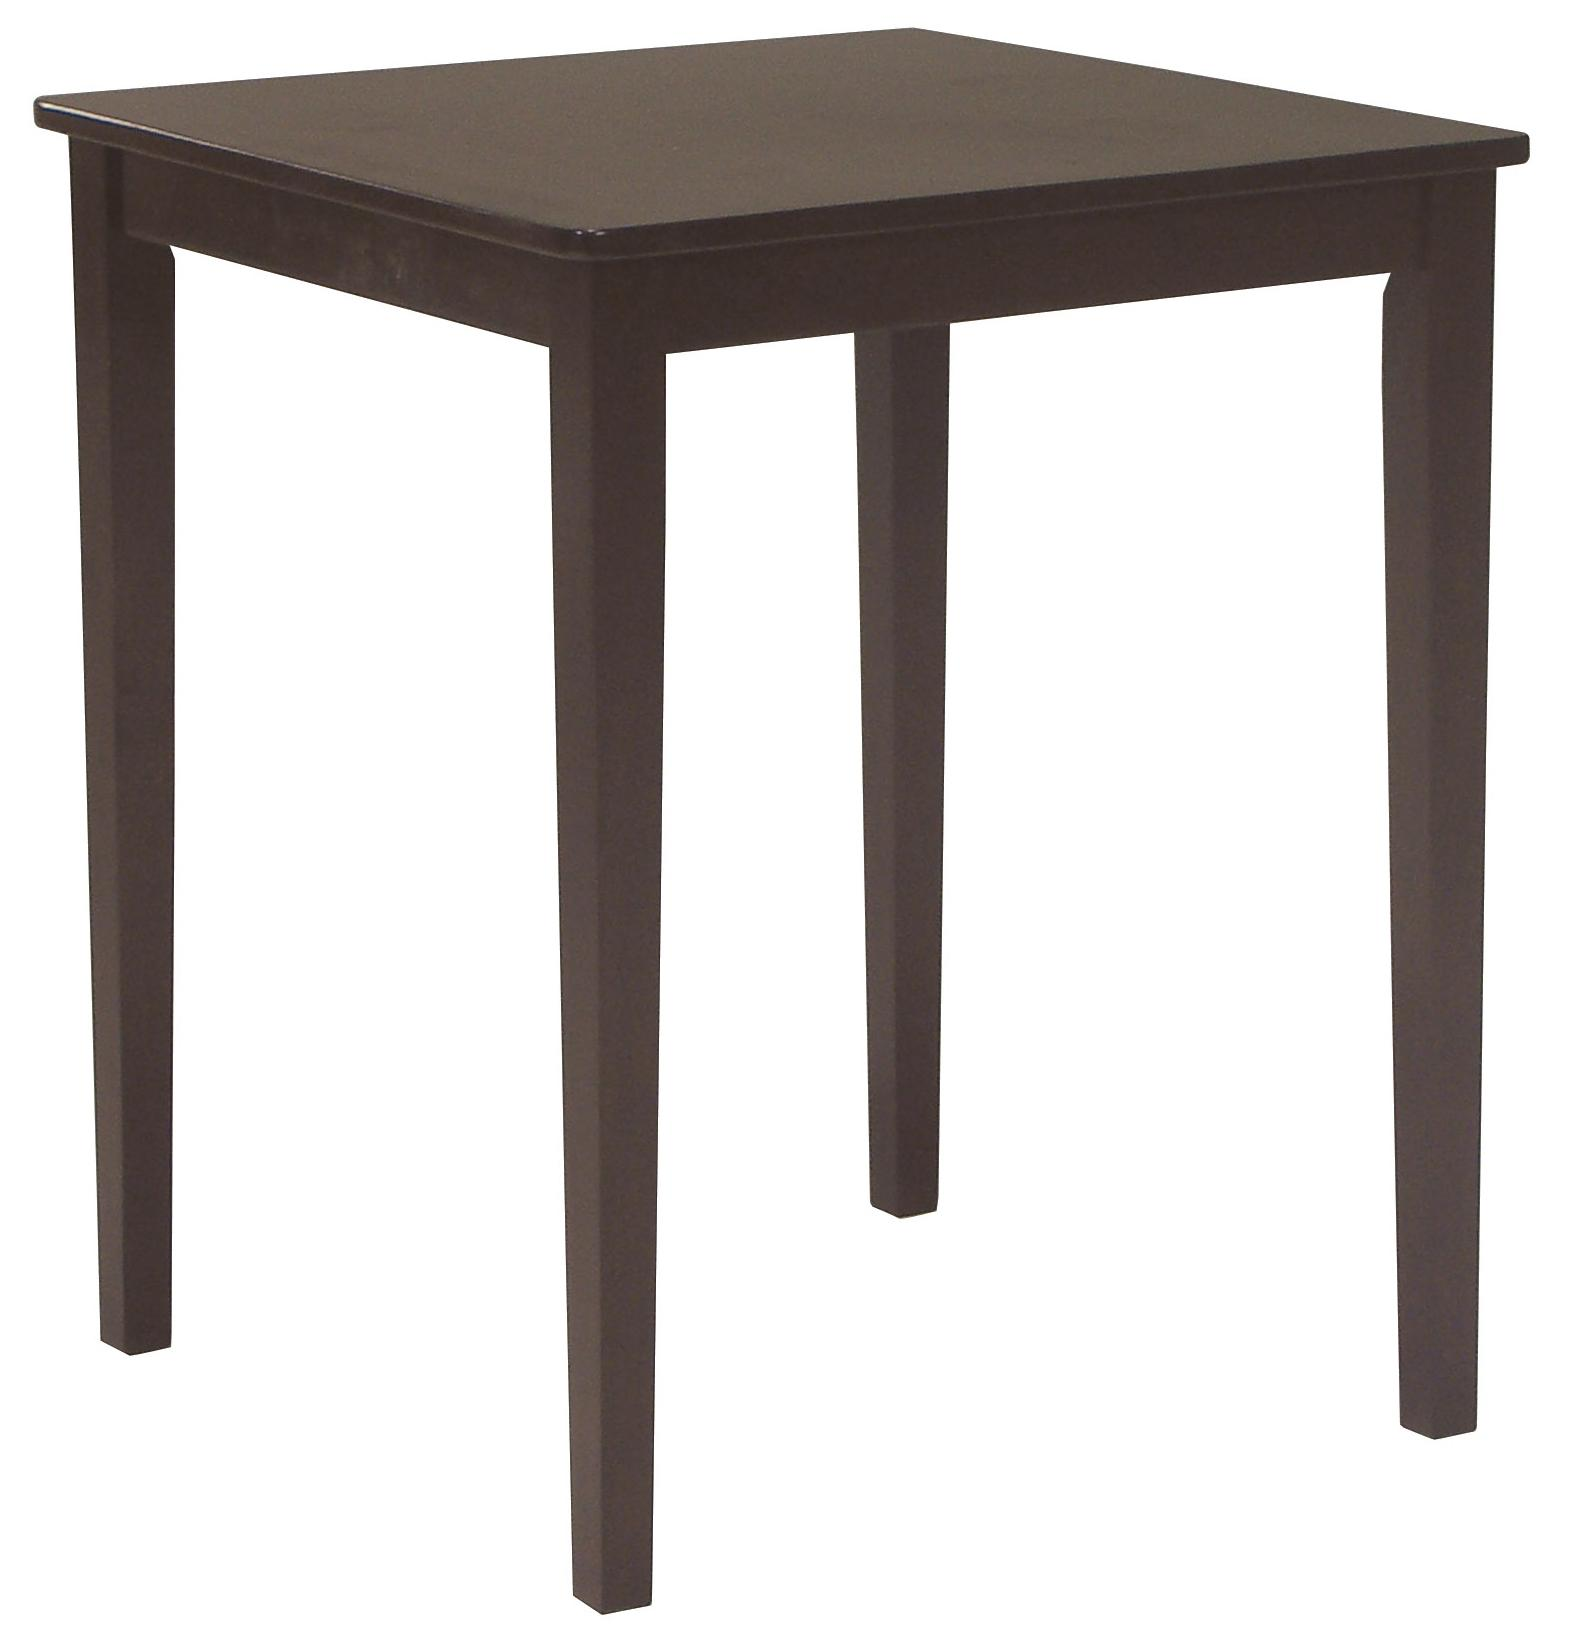 John Thomas Dining Essentials Contemporary Square Pub Table - Item Number: T15-3030GS